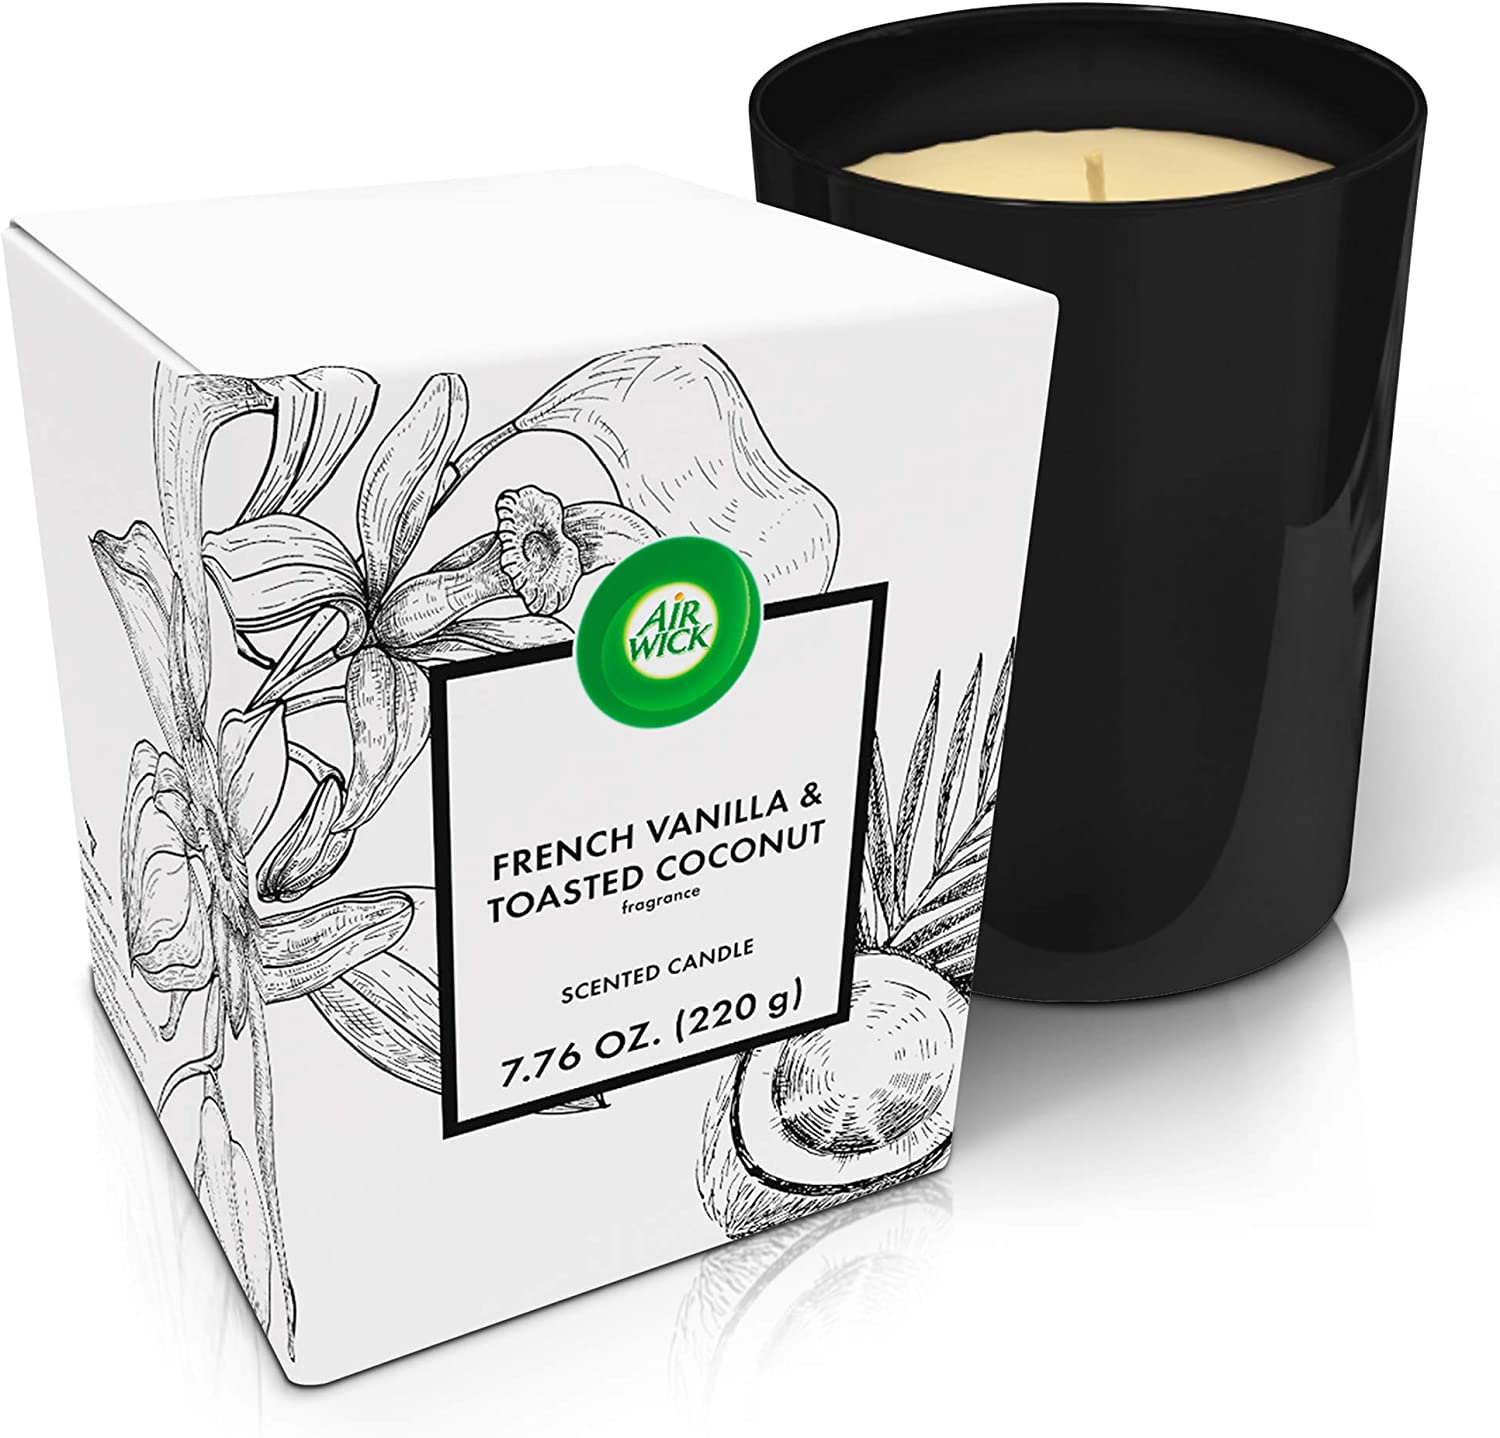 Air Wick Scented Candles, French Vanilla and Toasted Coconut Fragrance, 40 Hours Long-Lasting Burn, Luxury Dark Glass for Home Décor, Gift idea, Premium Crafted Candle Jar, 7.76oz